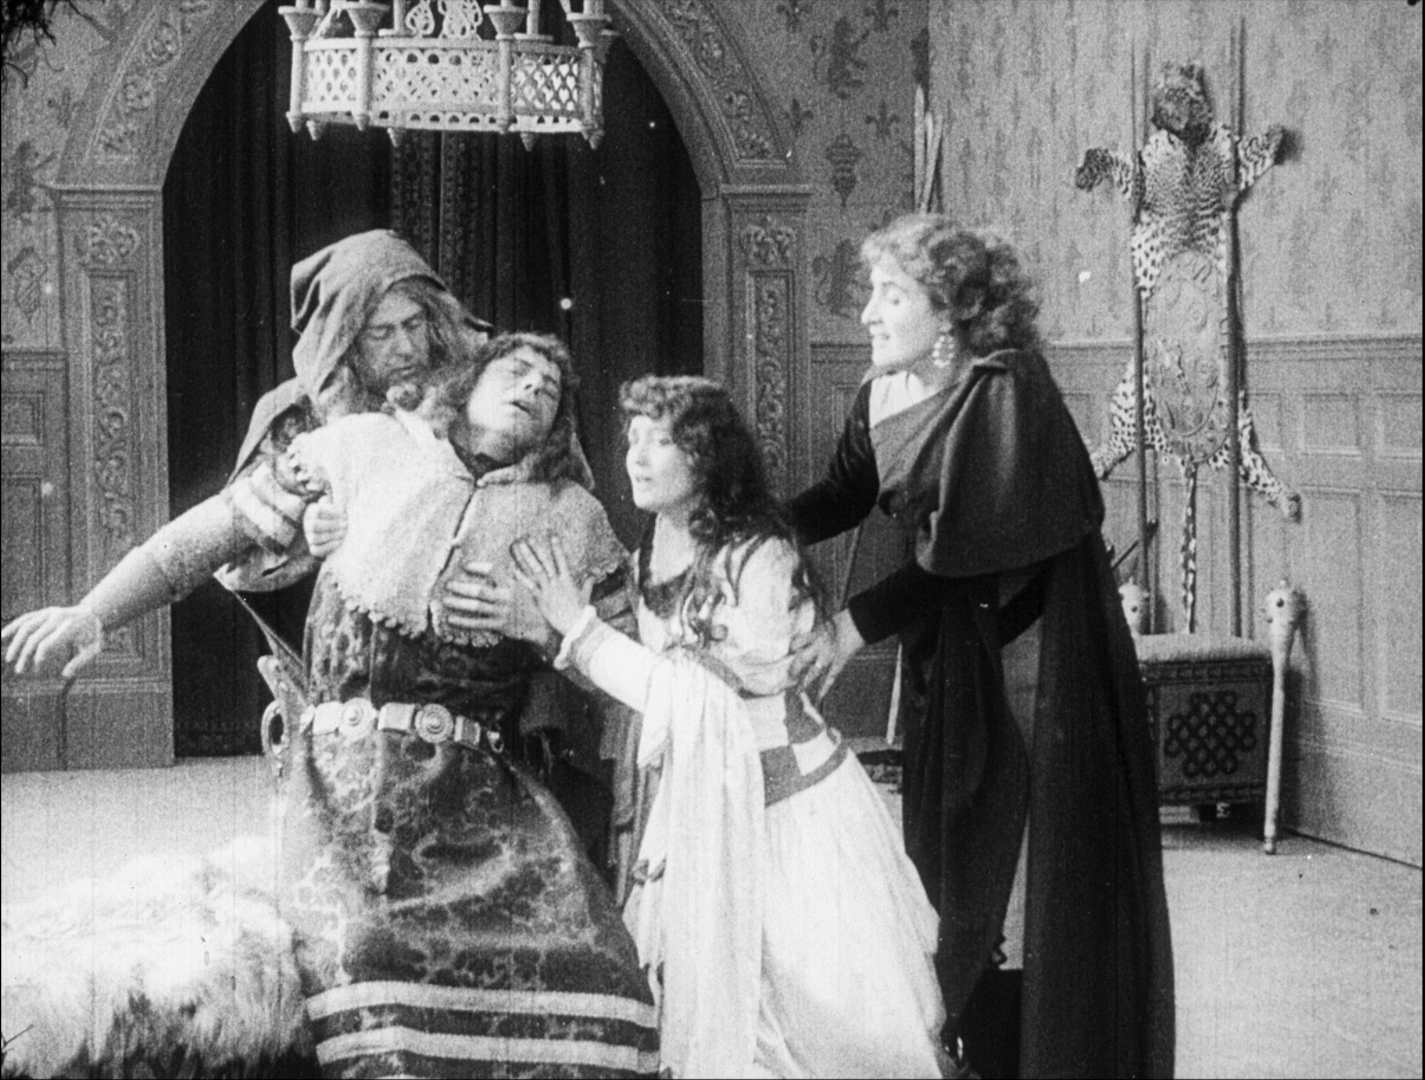 The Winter's Tale (1913)